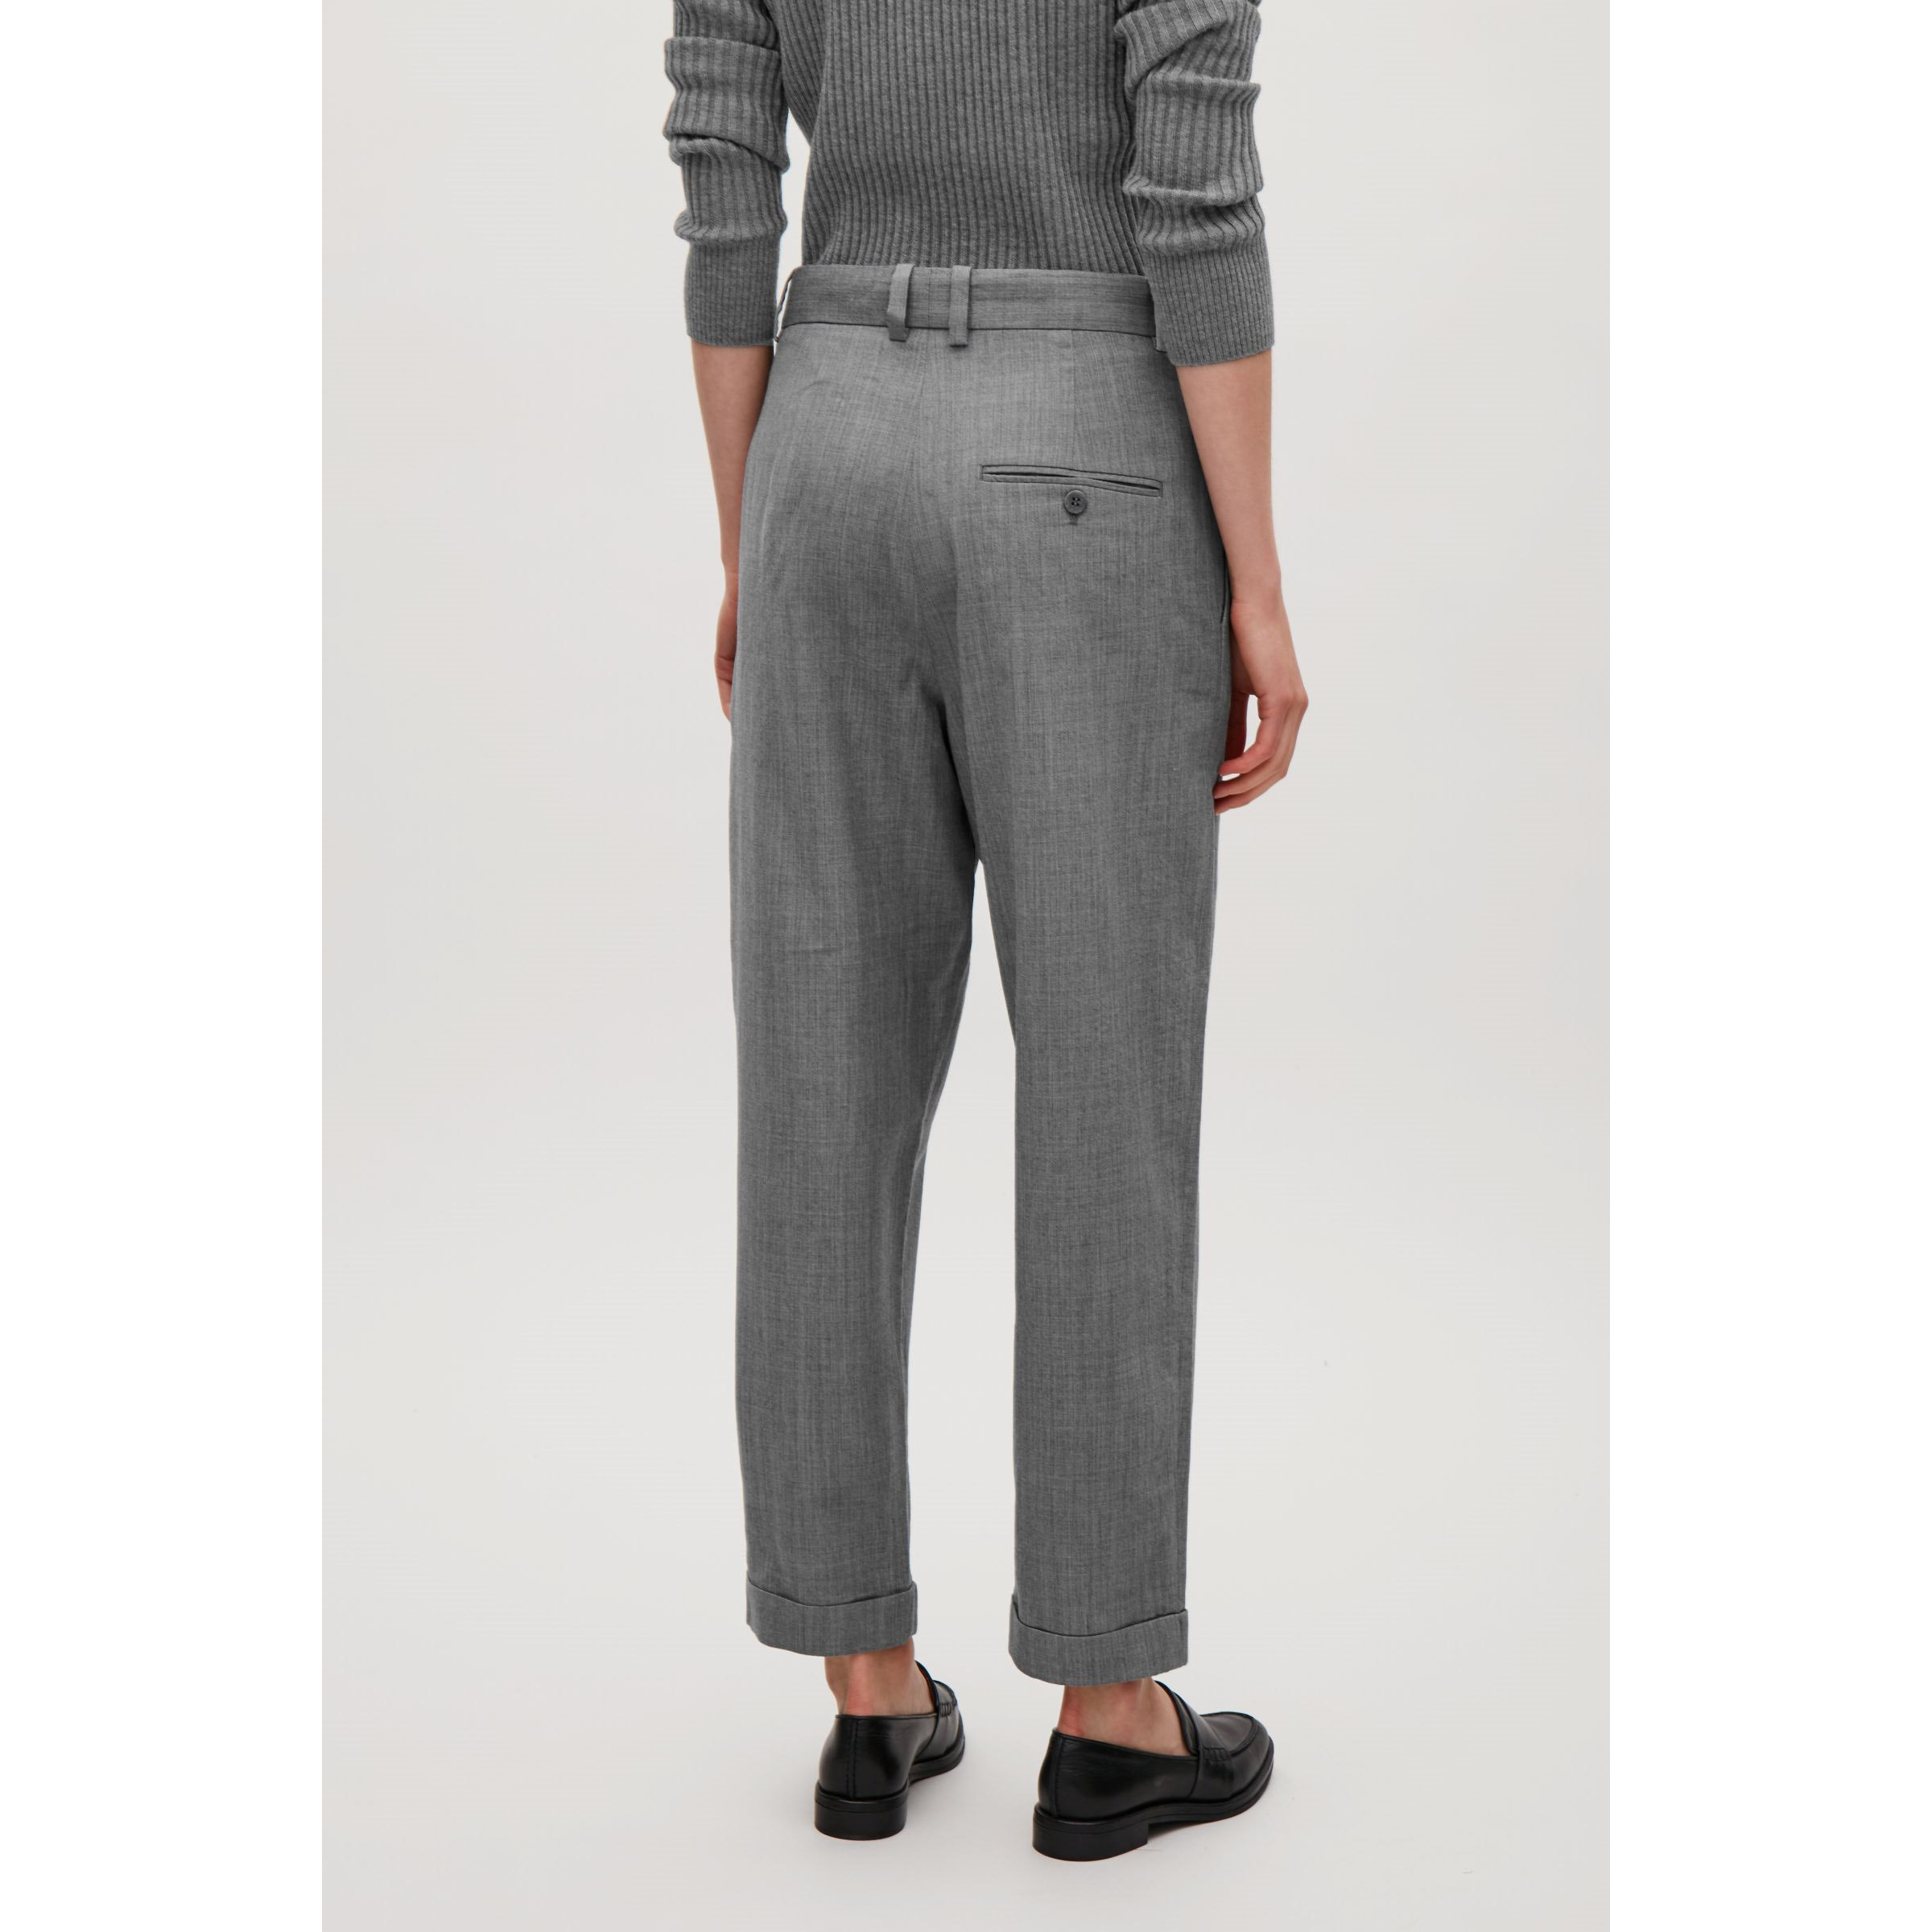 COS☆WOOL TROUSERS WITH TURN-UPS / grey